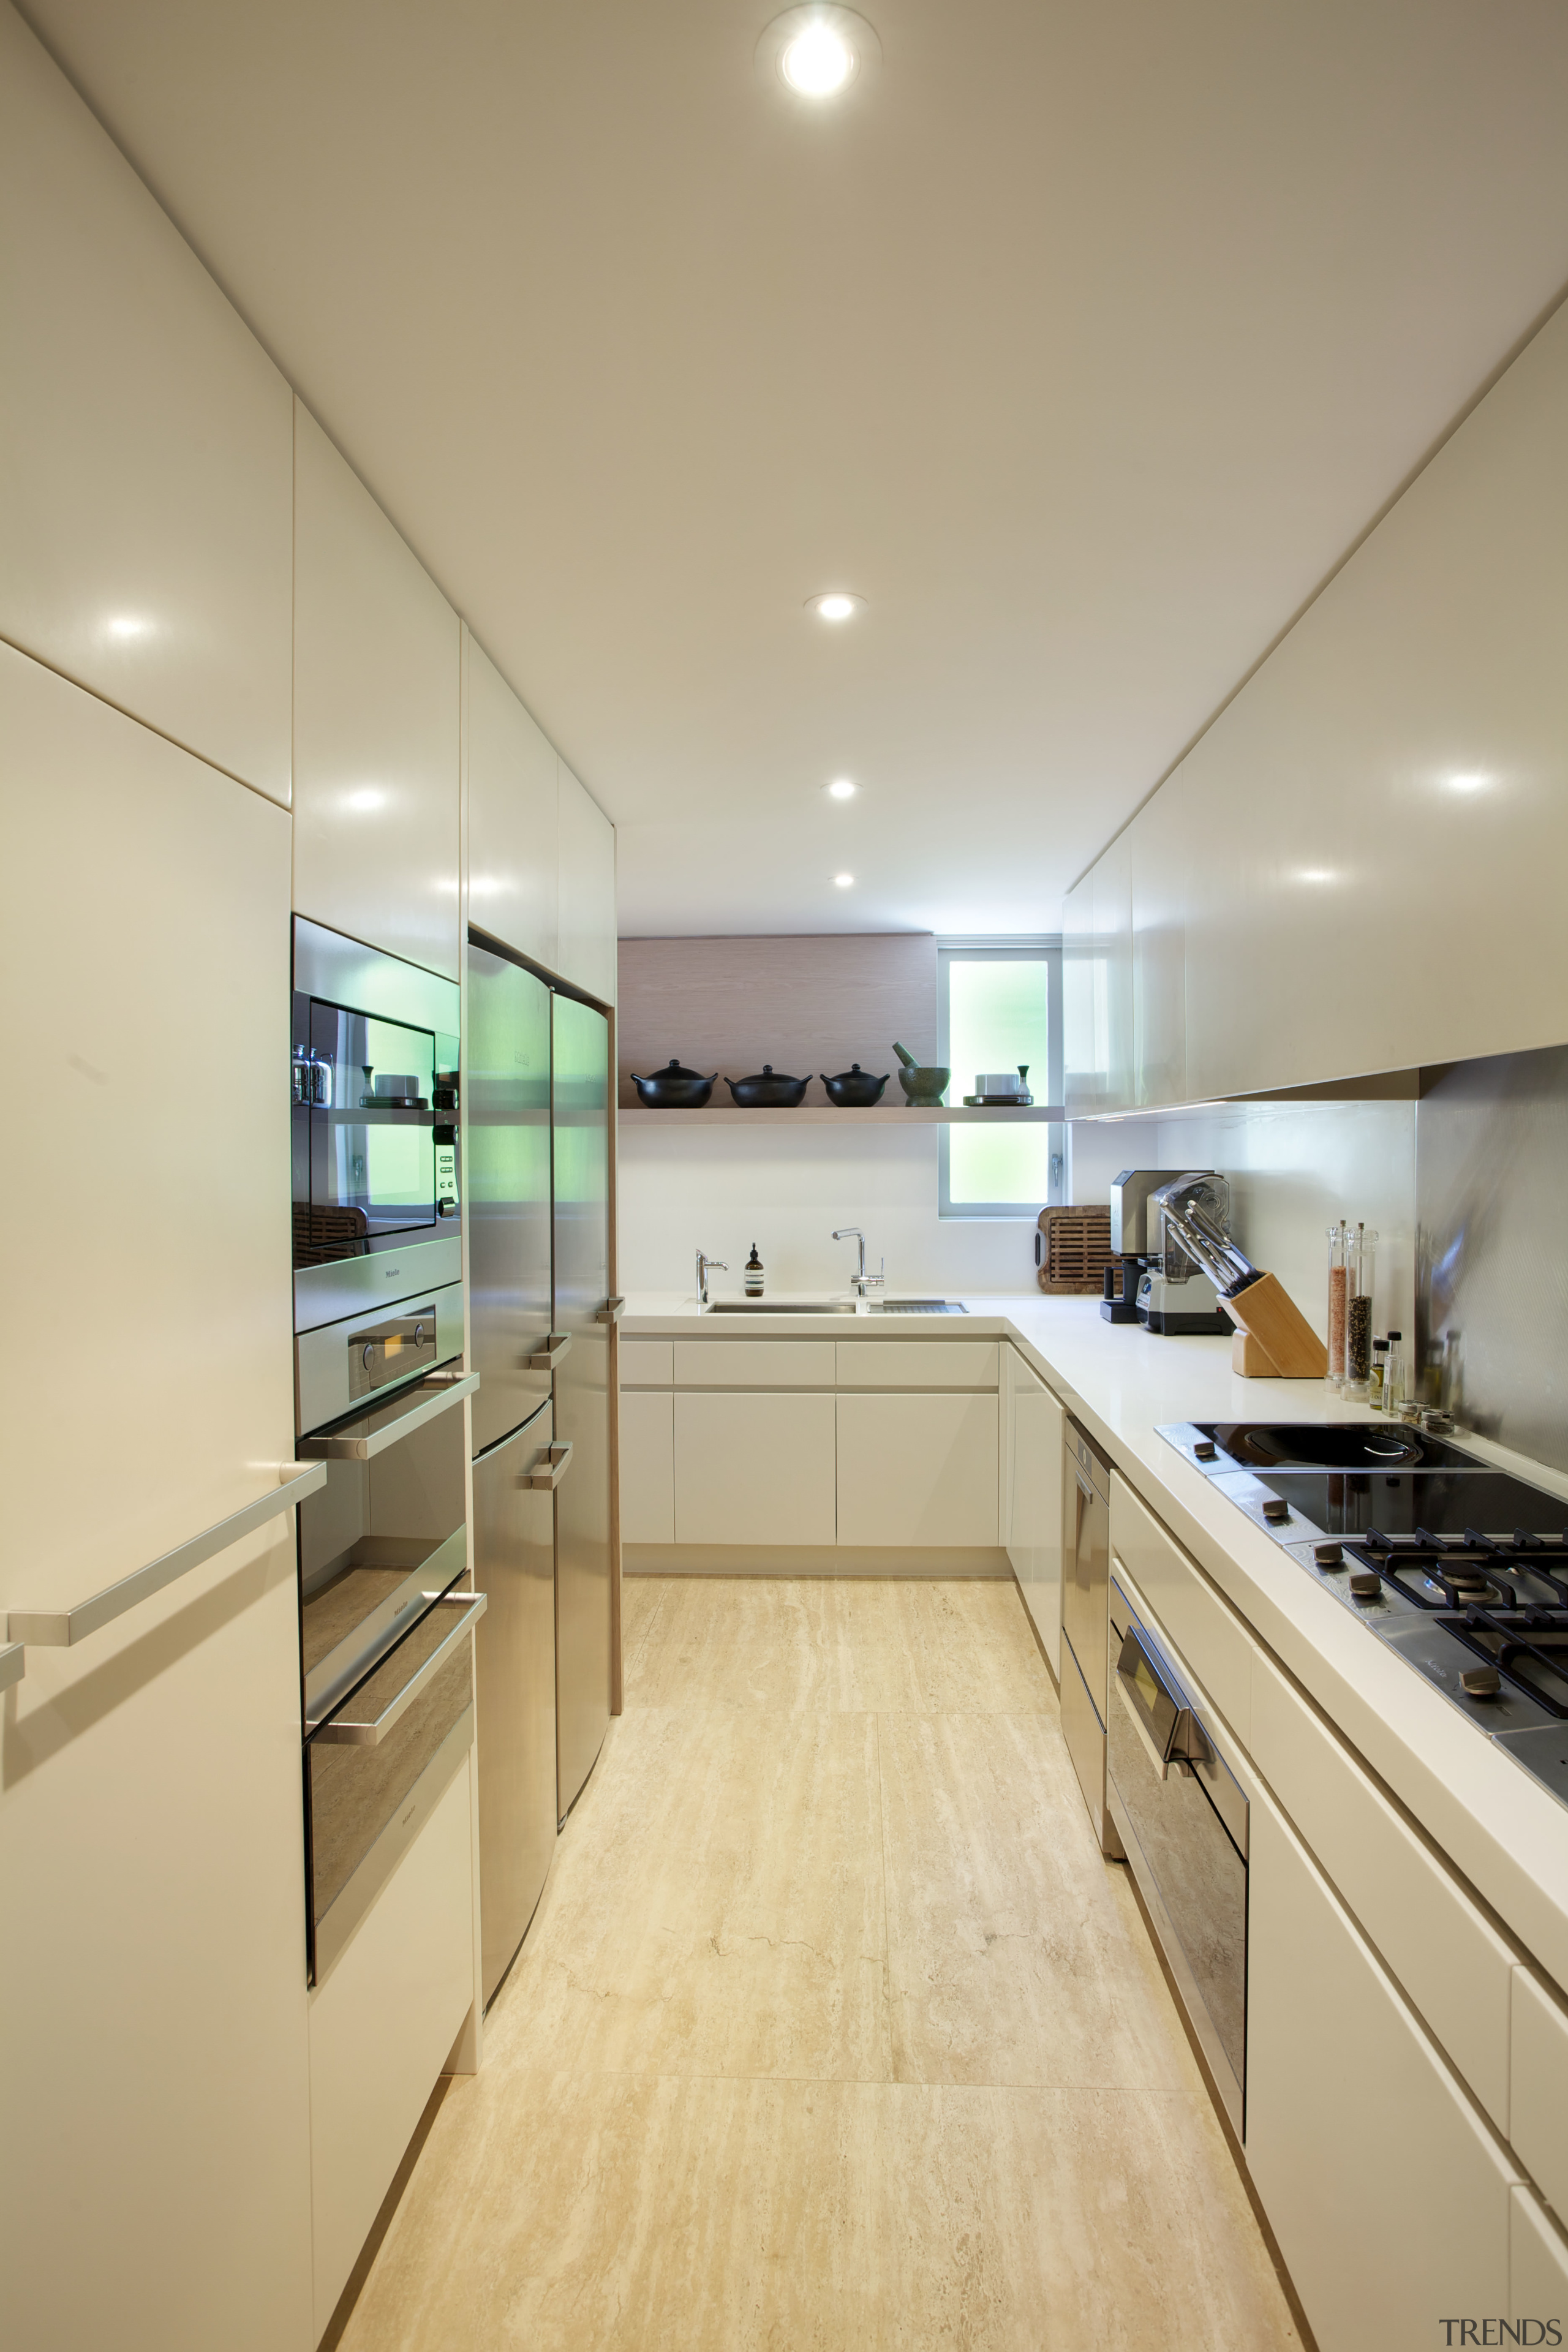 A second kitchen in this renovated house runs cabinetry, ceiling, countertop, cuisine classique, interior design, kitchen, real estate, room, orange